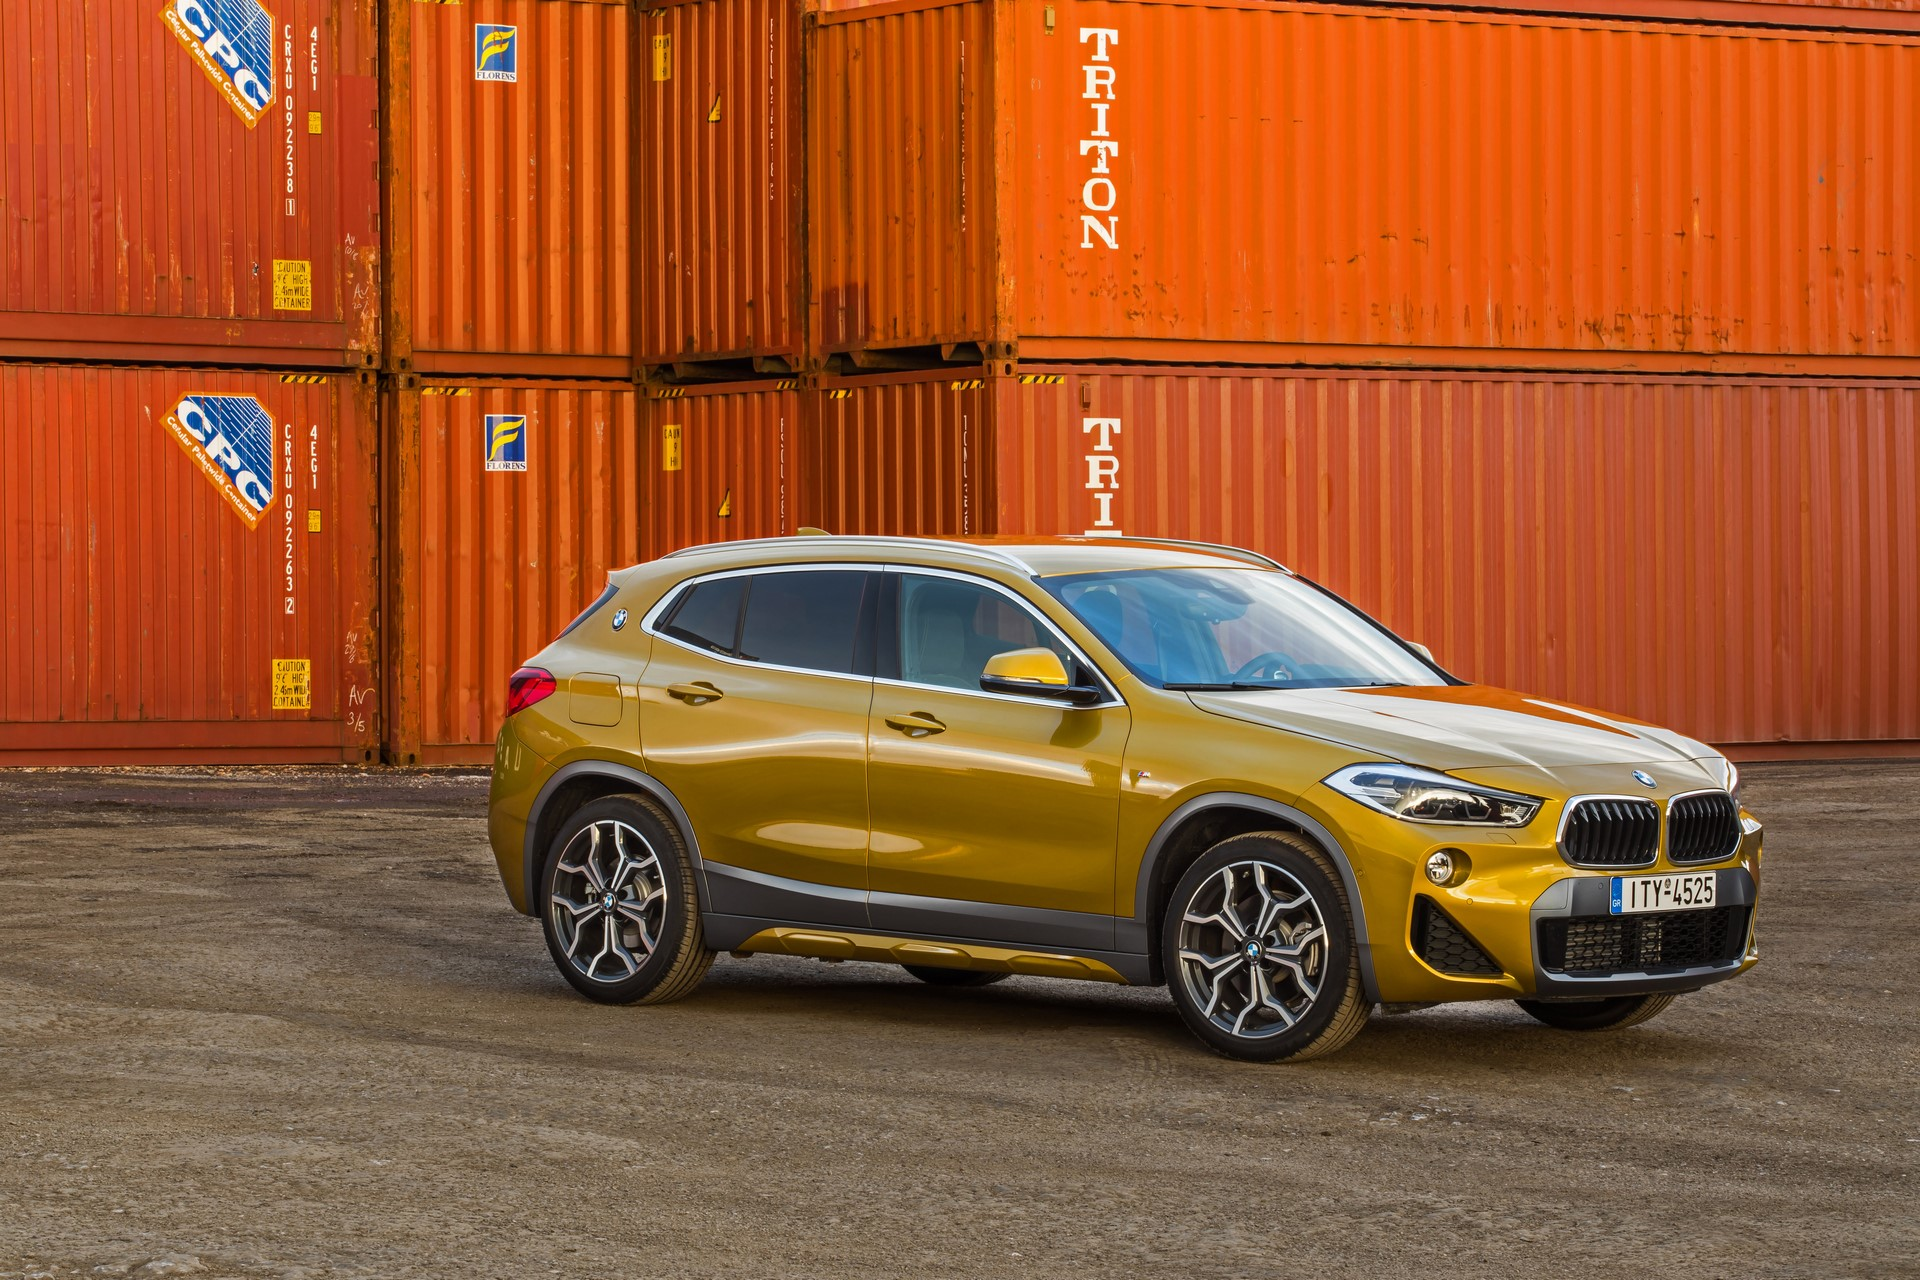 BMW X2 Greek 2018 (4)